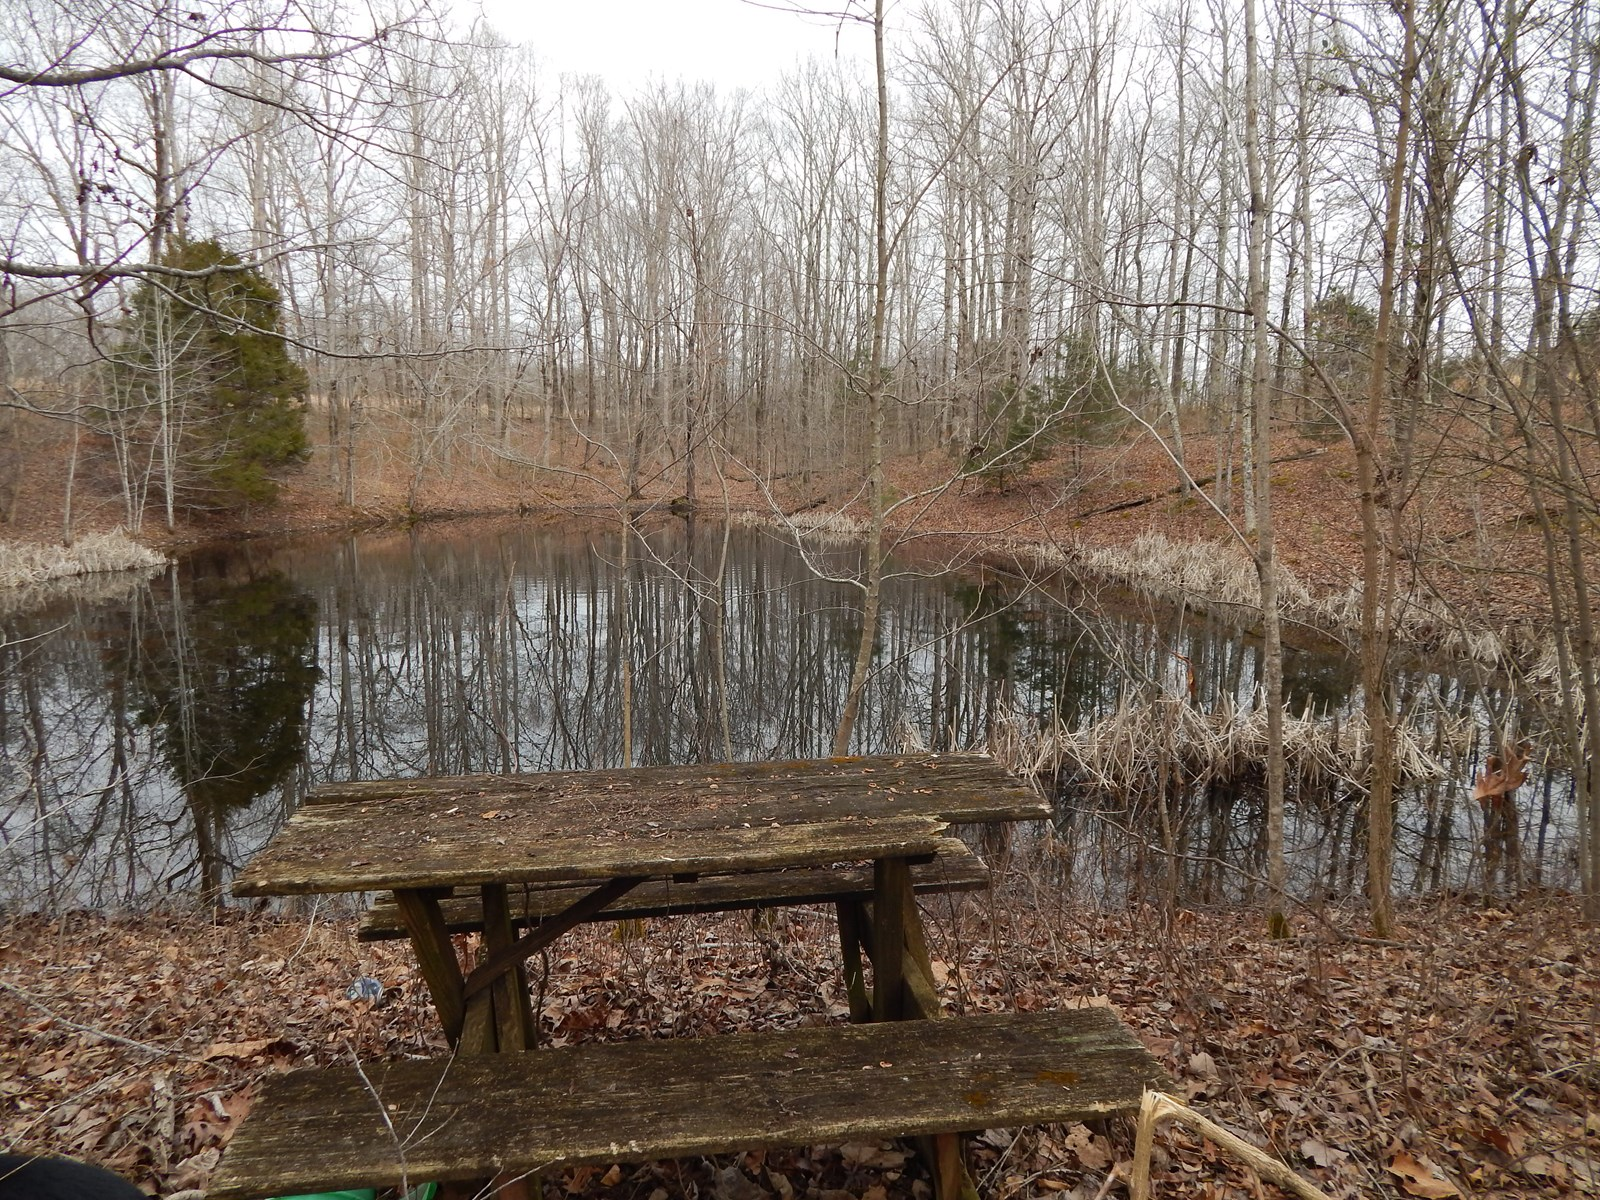 31 ACRES, W/2 PONDS FOR SALE IN ROLLING HILLS OF TENNESSEE!